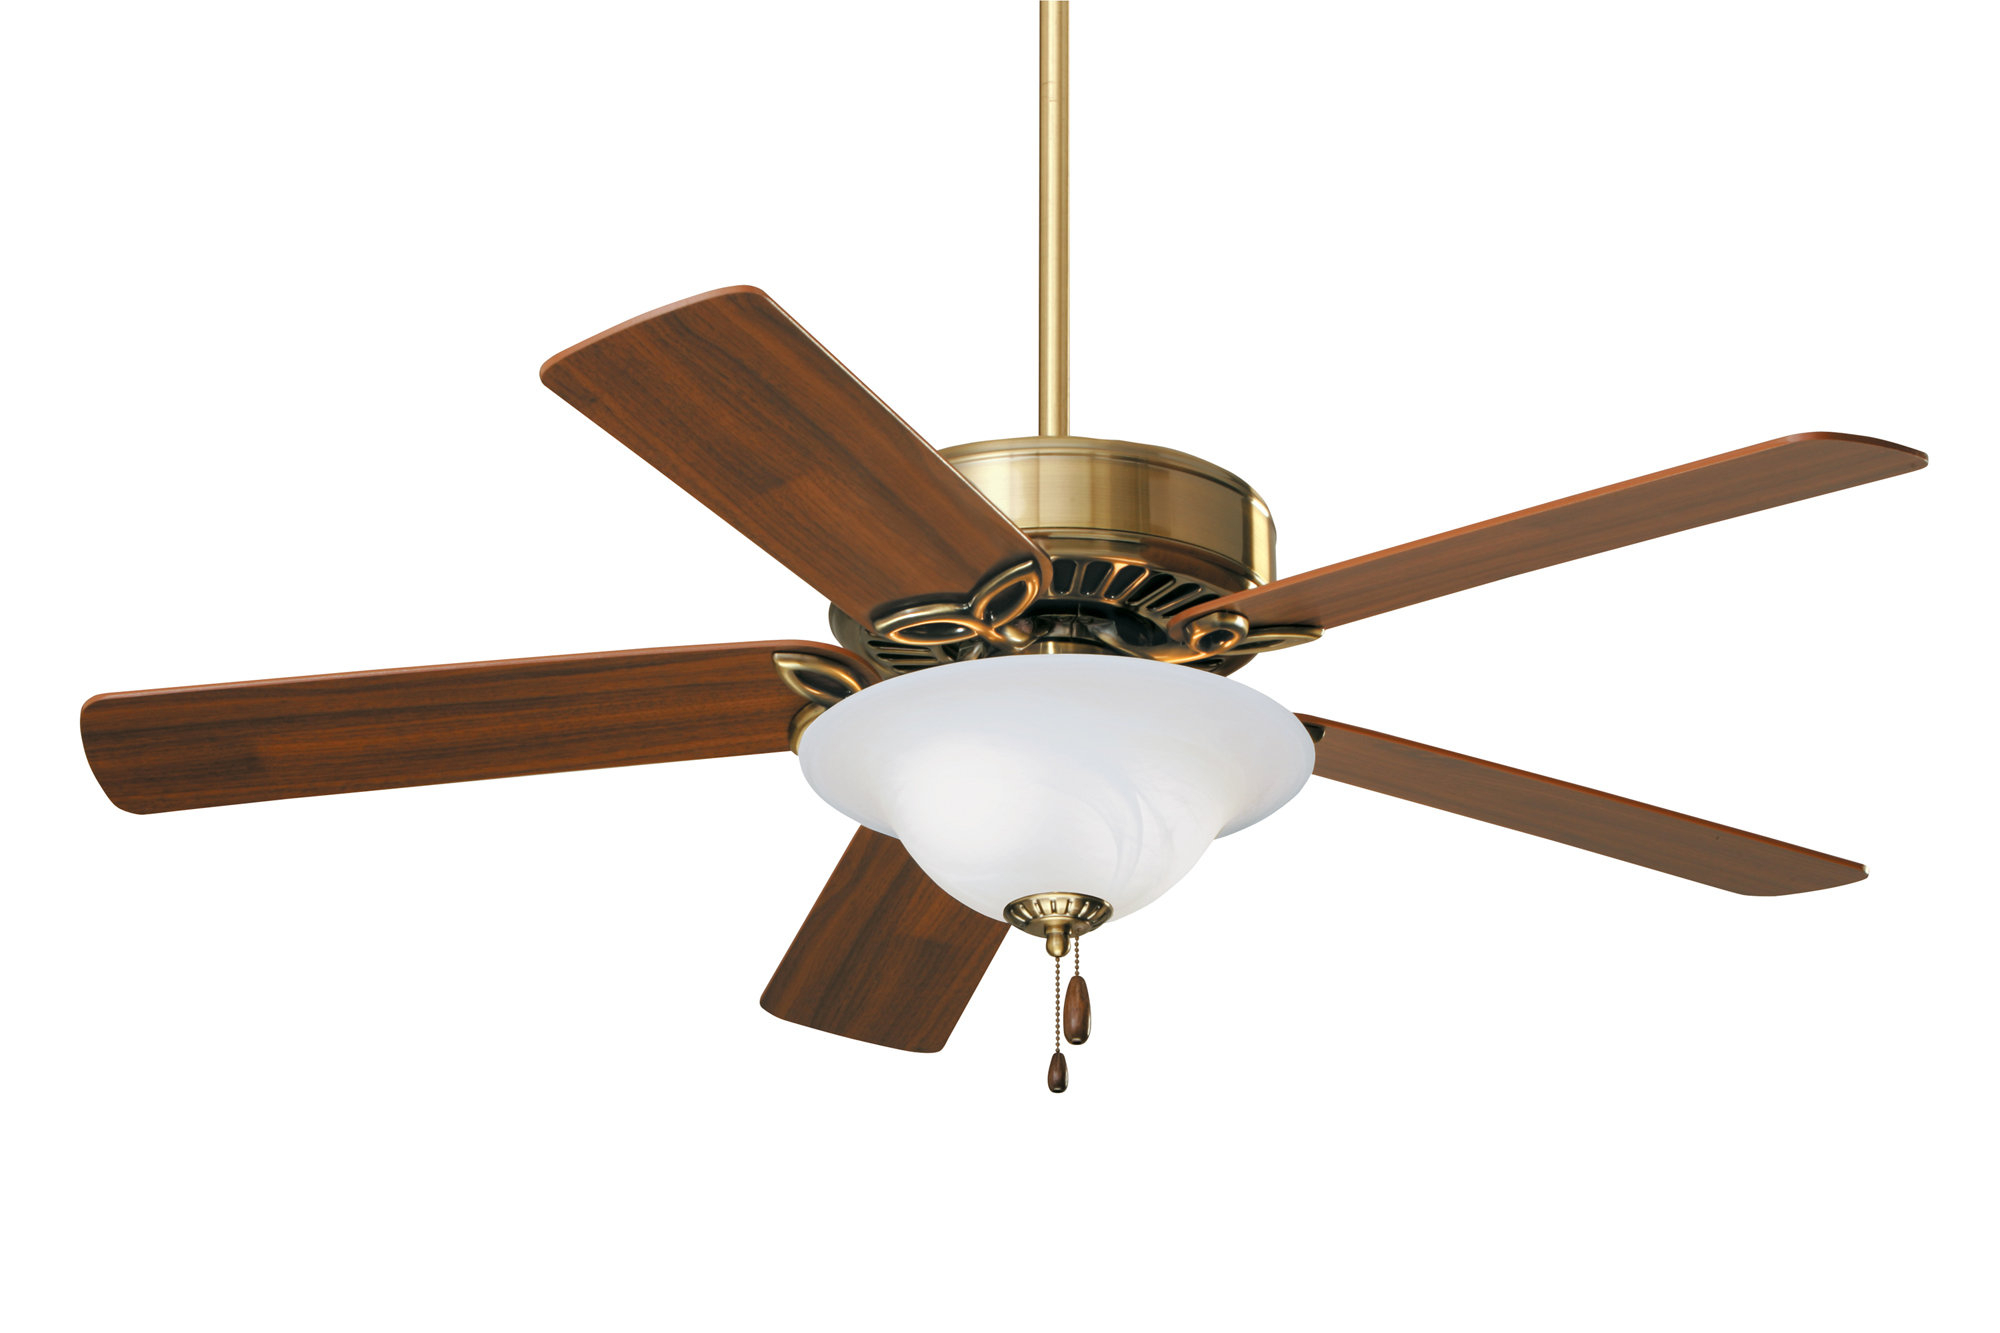 """Eliora 5 Blade Ceiling Fans For Most Current 50"""" Eliora 5 Blade Ceiling Fan, Light Kit Included (View 7 of 20)"""